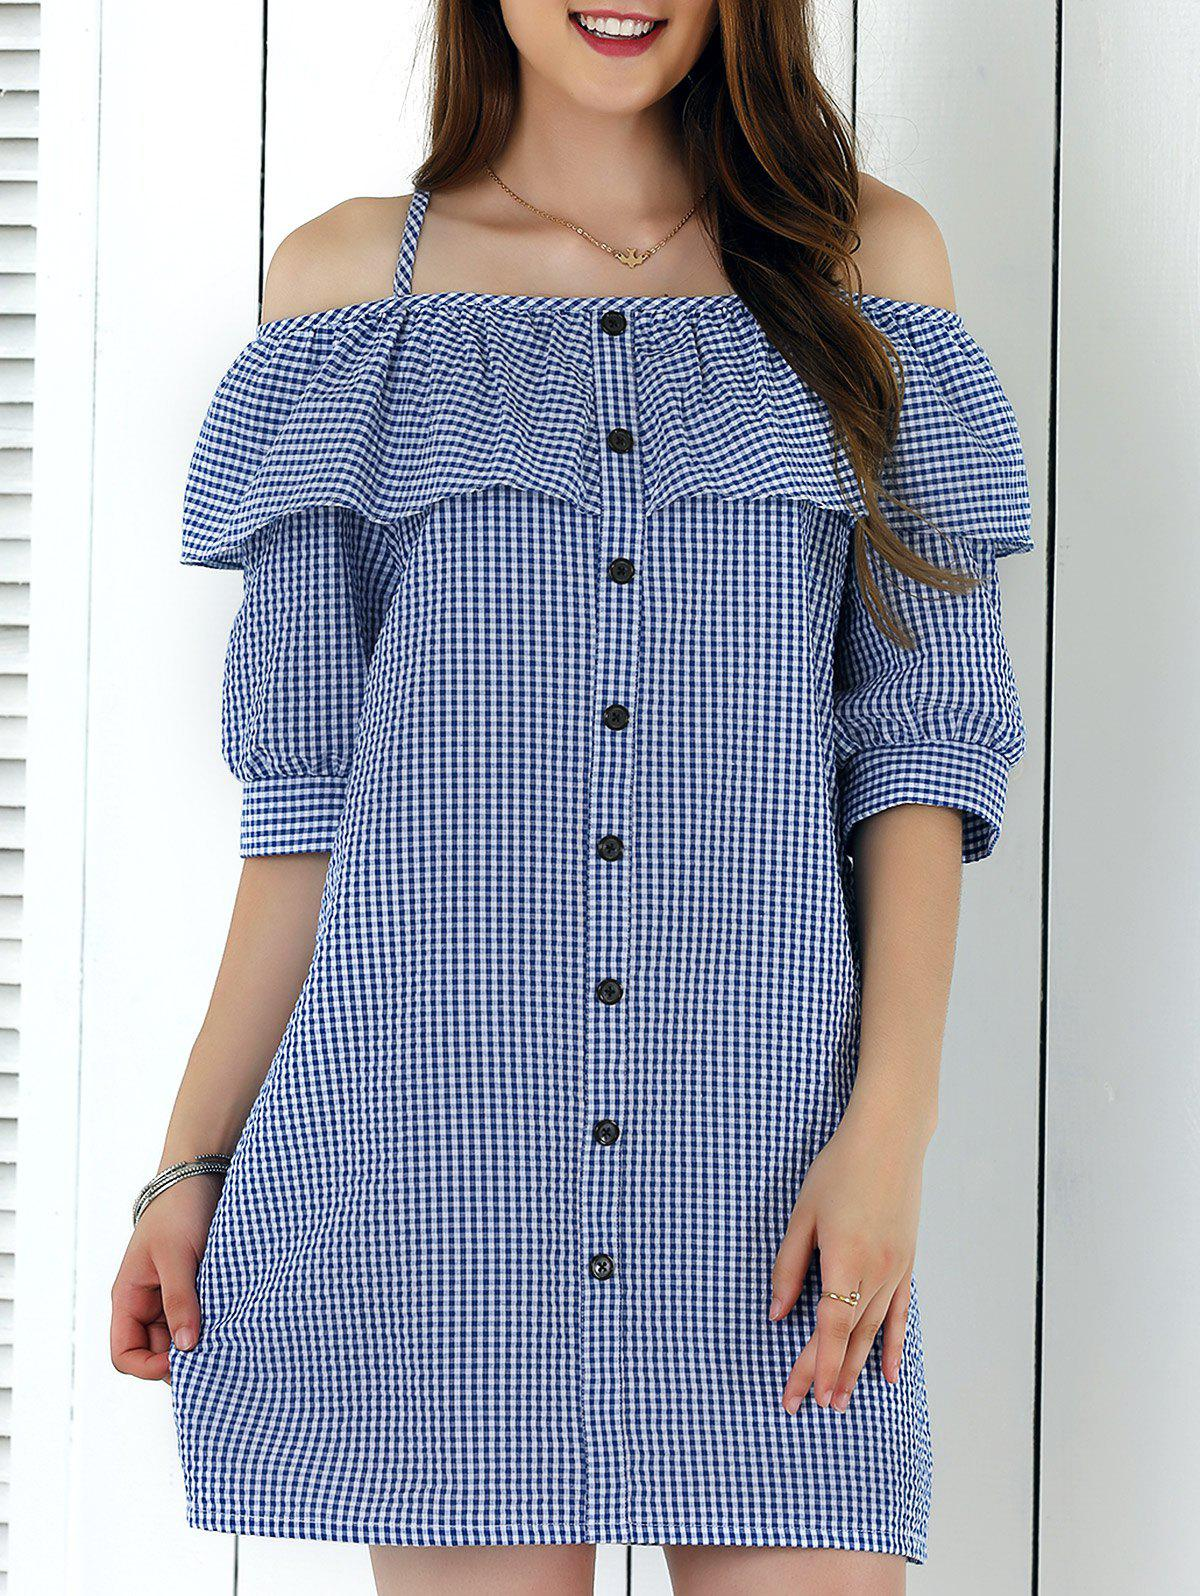 Preppy Style Spaghetti Strap Buttoned Plaid Dress - BLUE XL